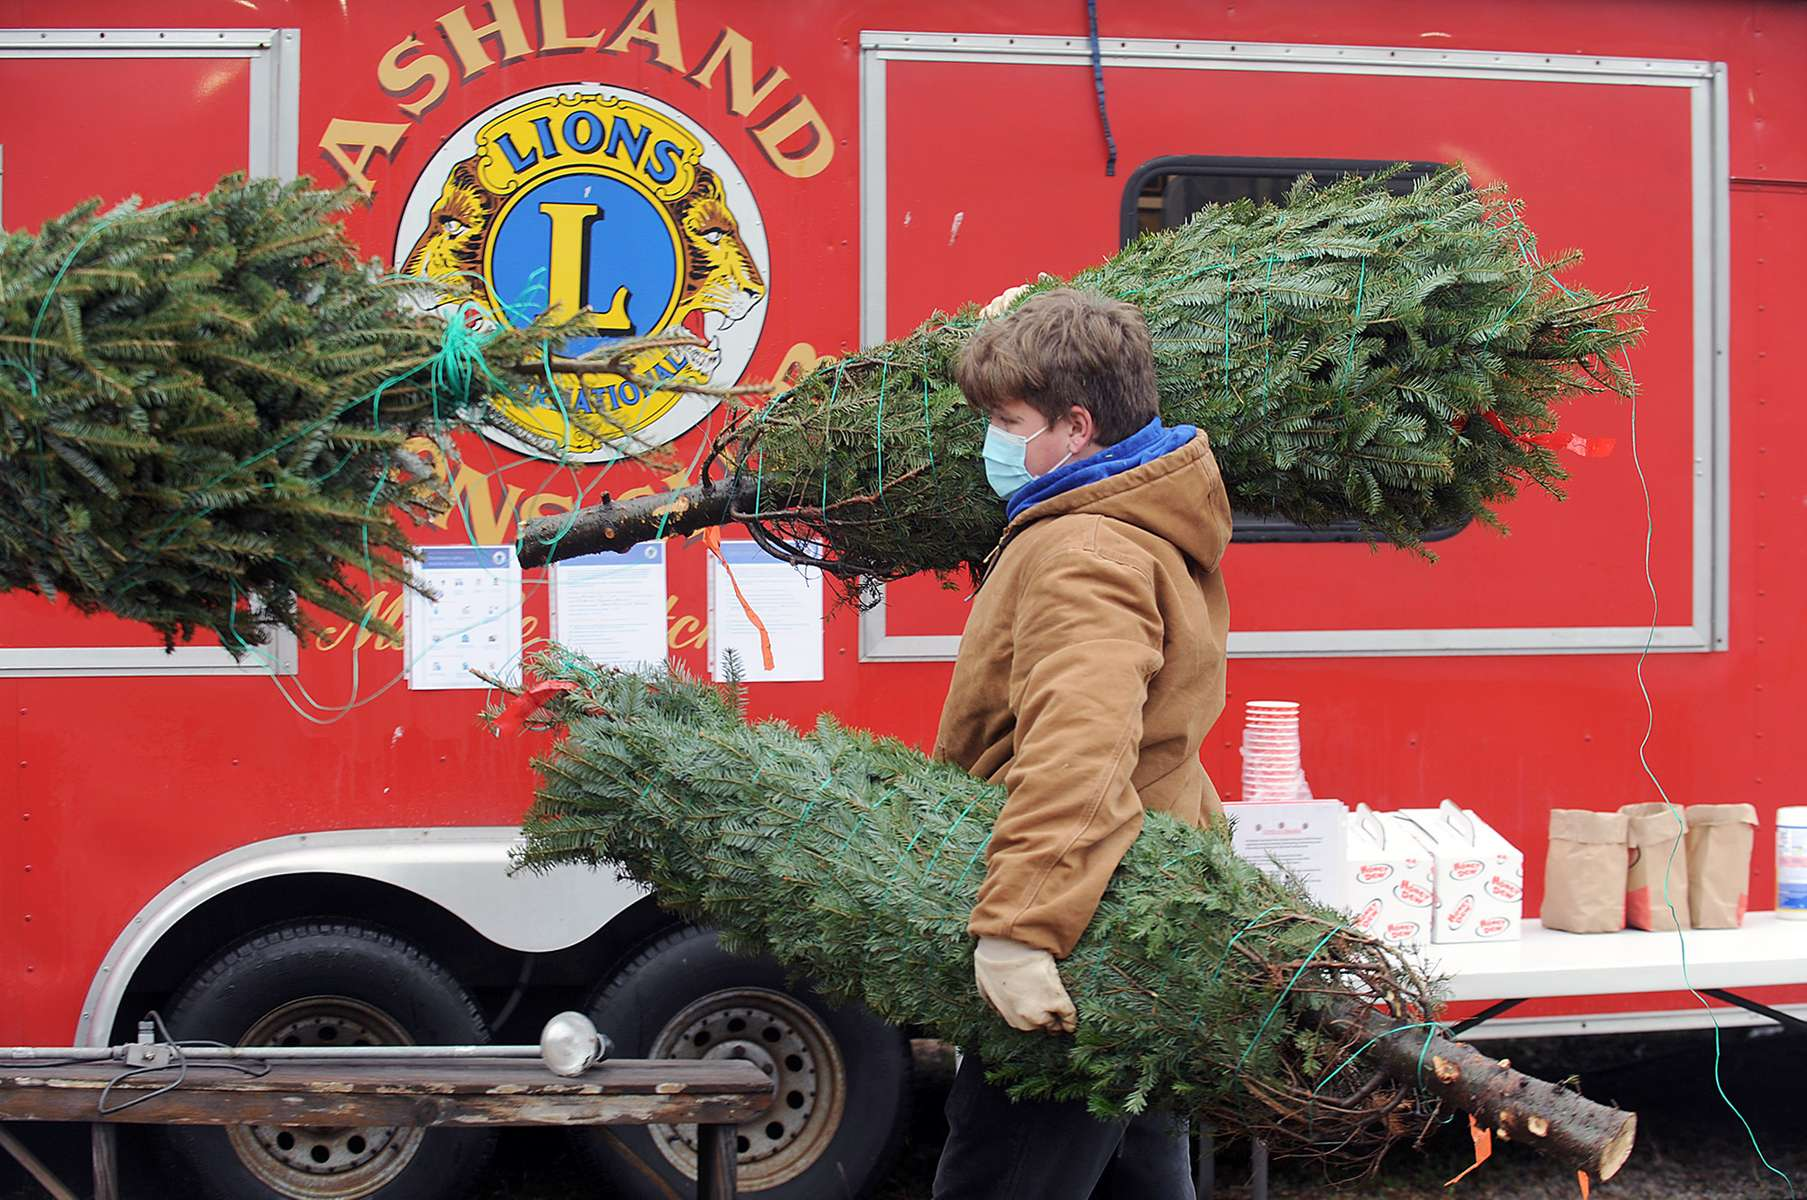 Ashland High School football player Patrick DesLauriers carries one of 700 Maine Christmas trees he and teammates unloaded  Nov. 27, 2020 for the Lions Club annual tree sale at 130 Pond St. which is open 3-6 p.m. Monday through Friday and 9 a.m. to 8 p.m. on weekends.